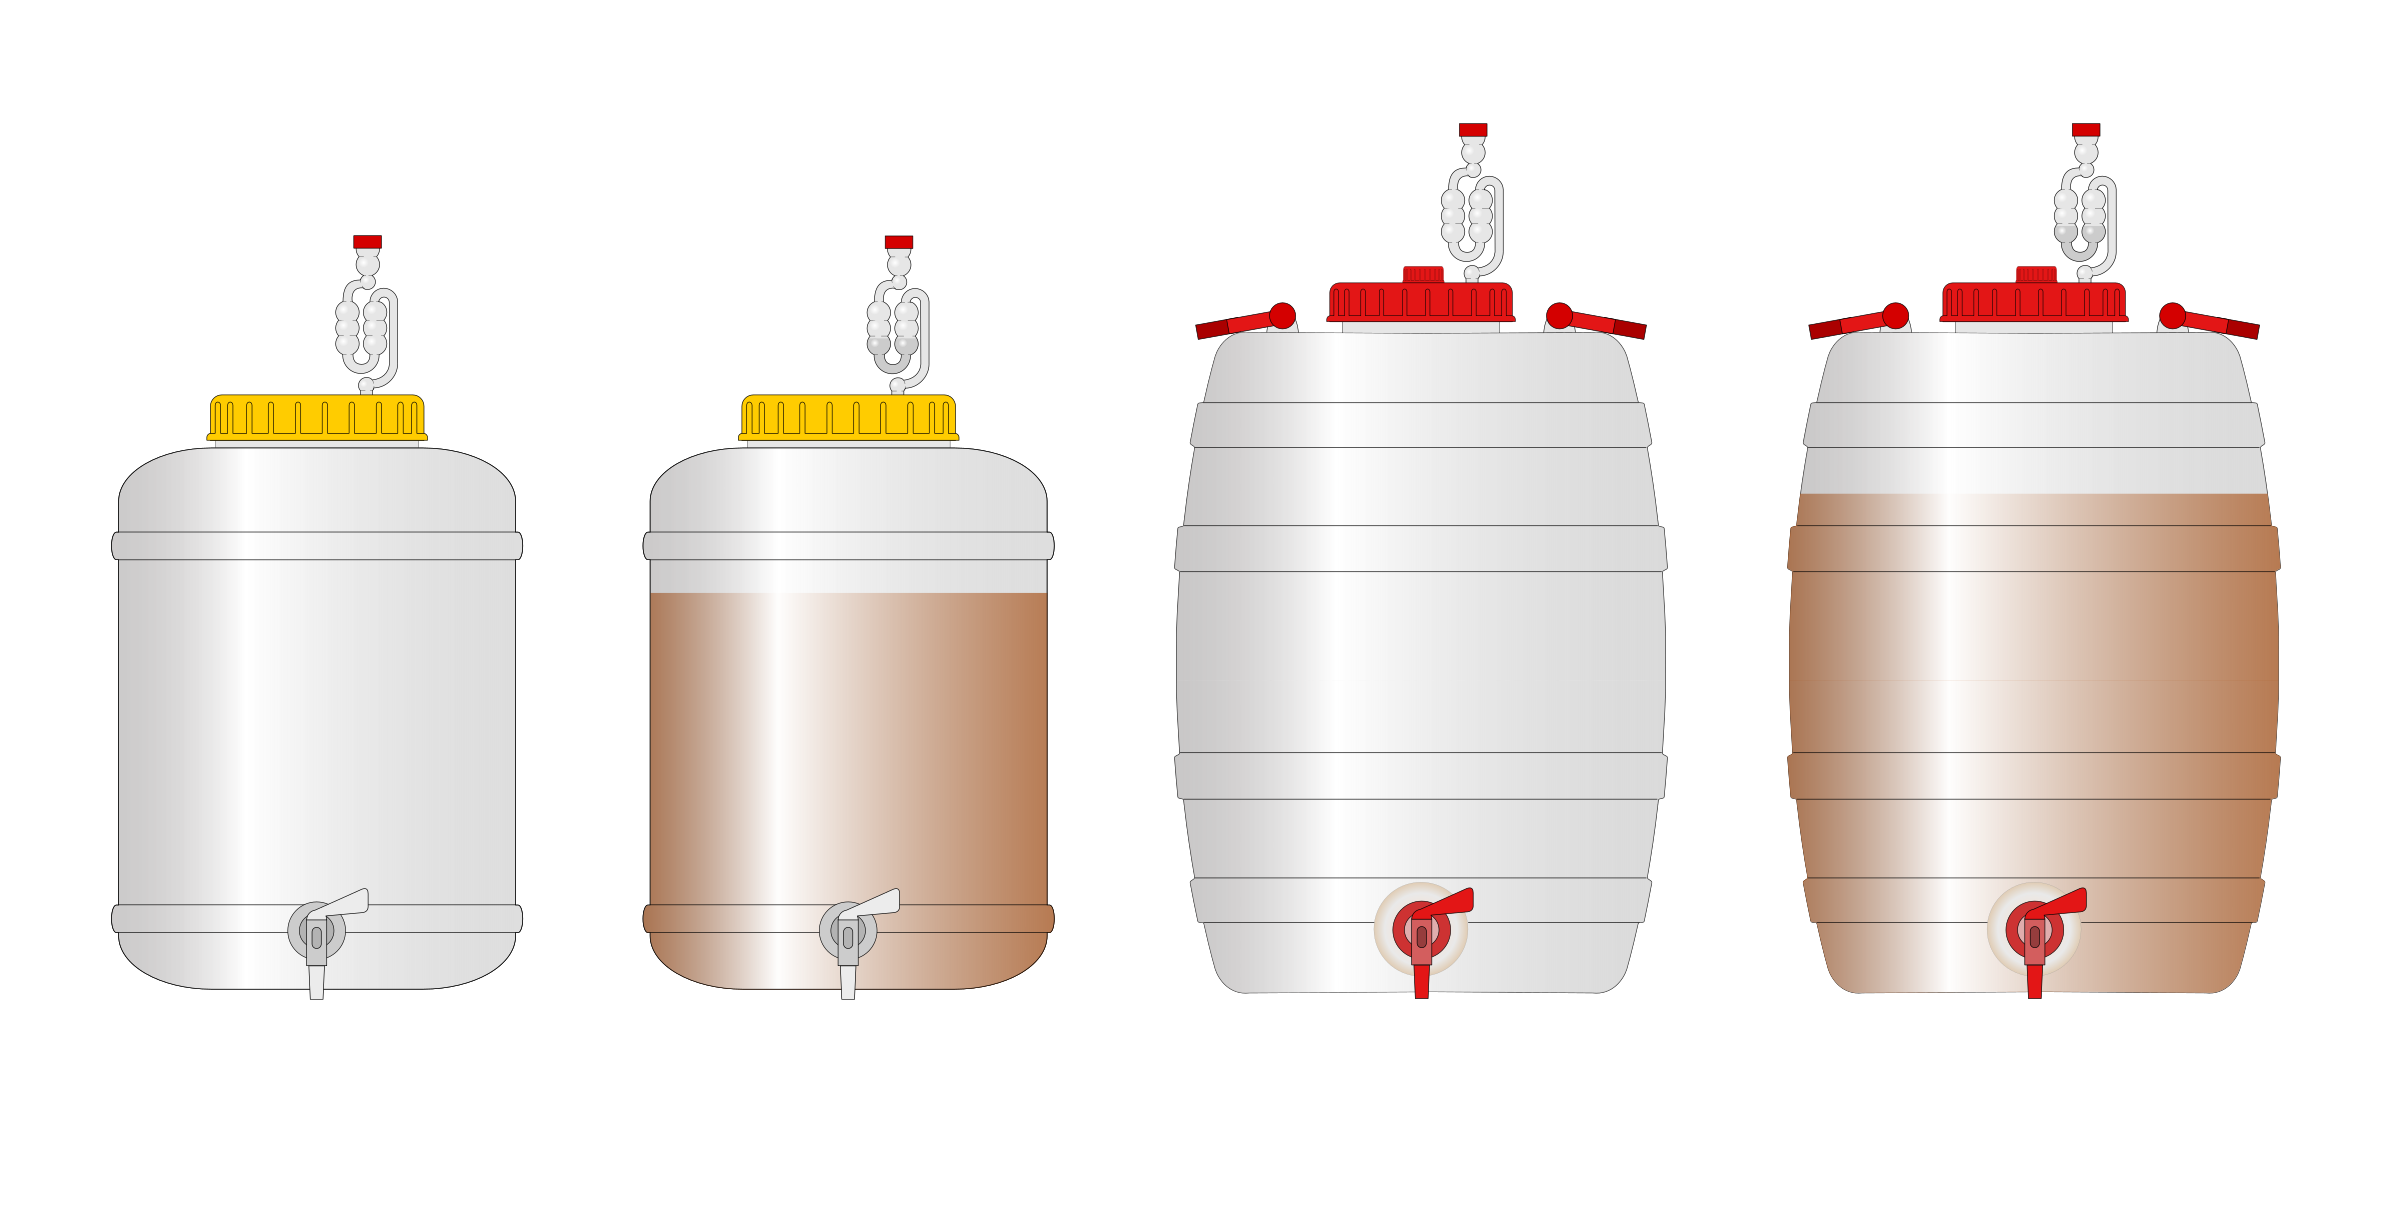 Homebrewing Fermenters by stefanolmo